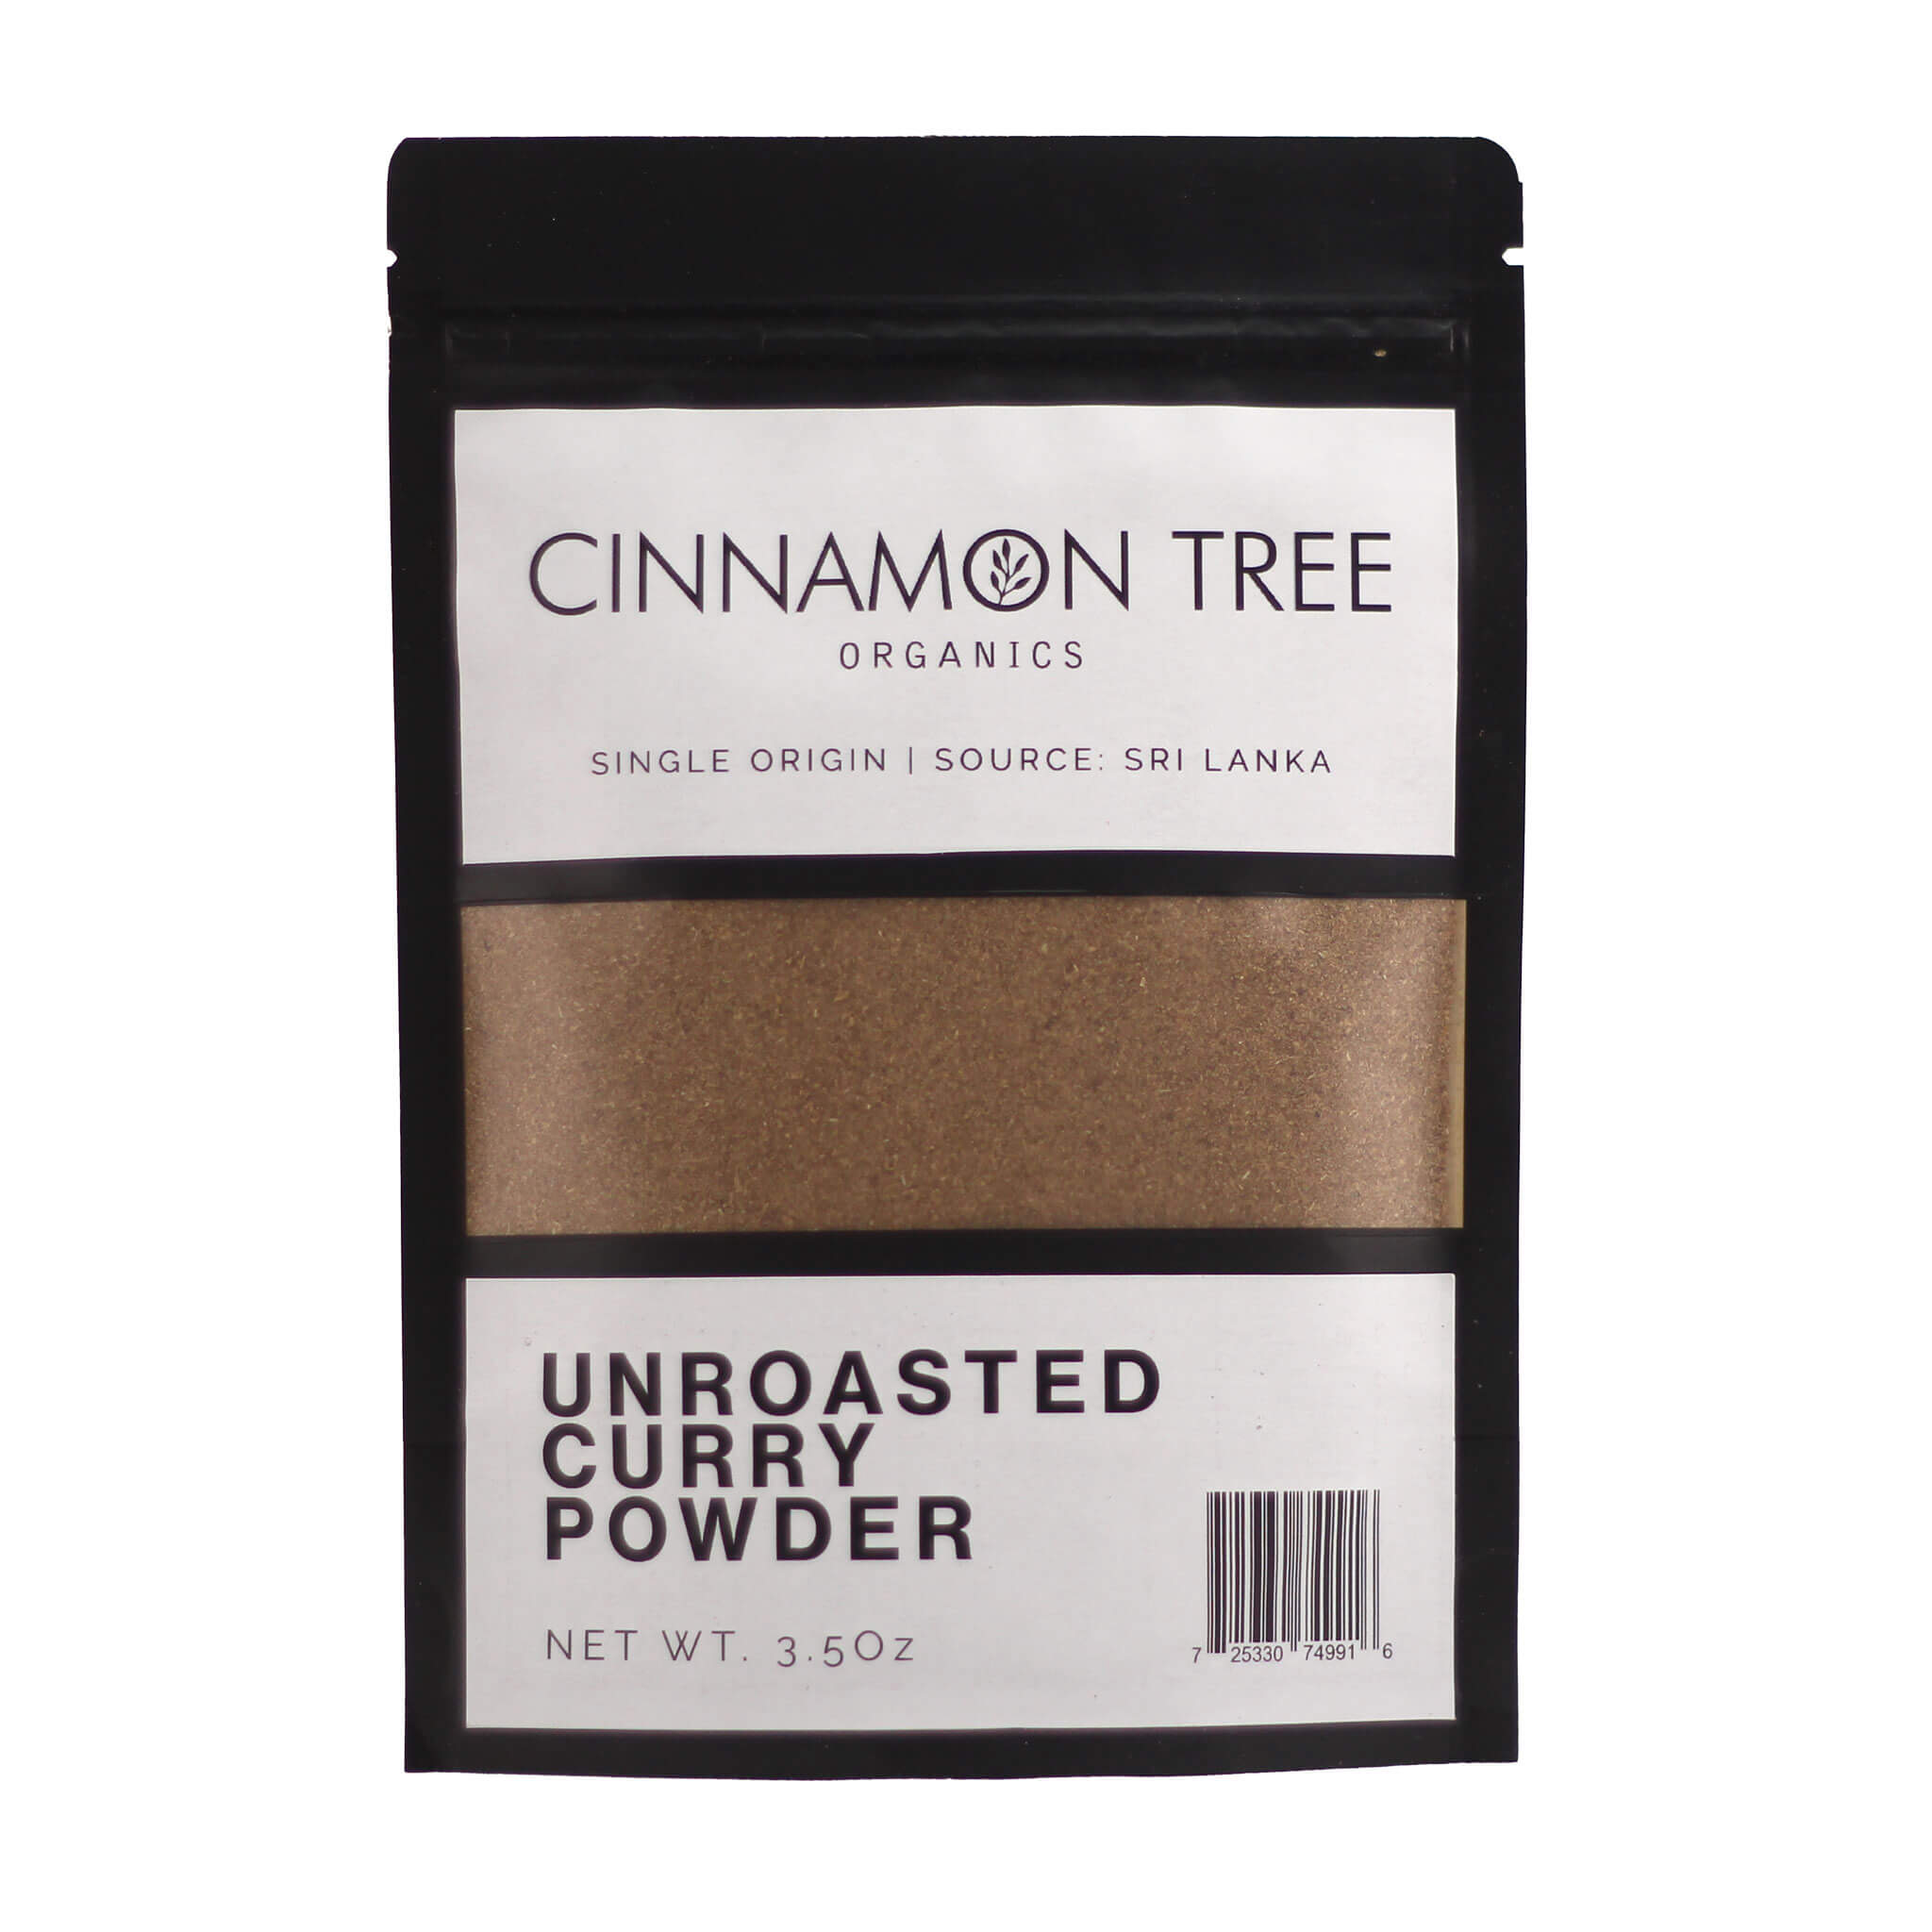 Cinnamon Tree Organics Unroasted Curry Powder 3.5Oz Pack